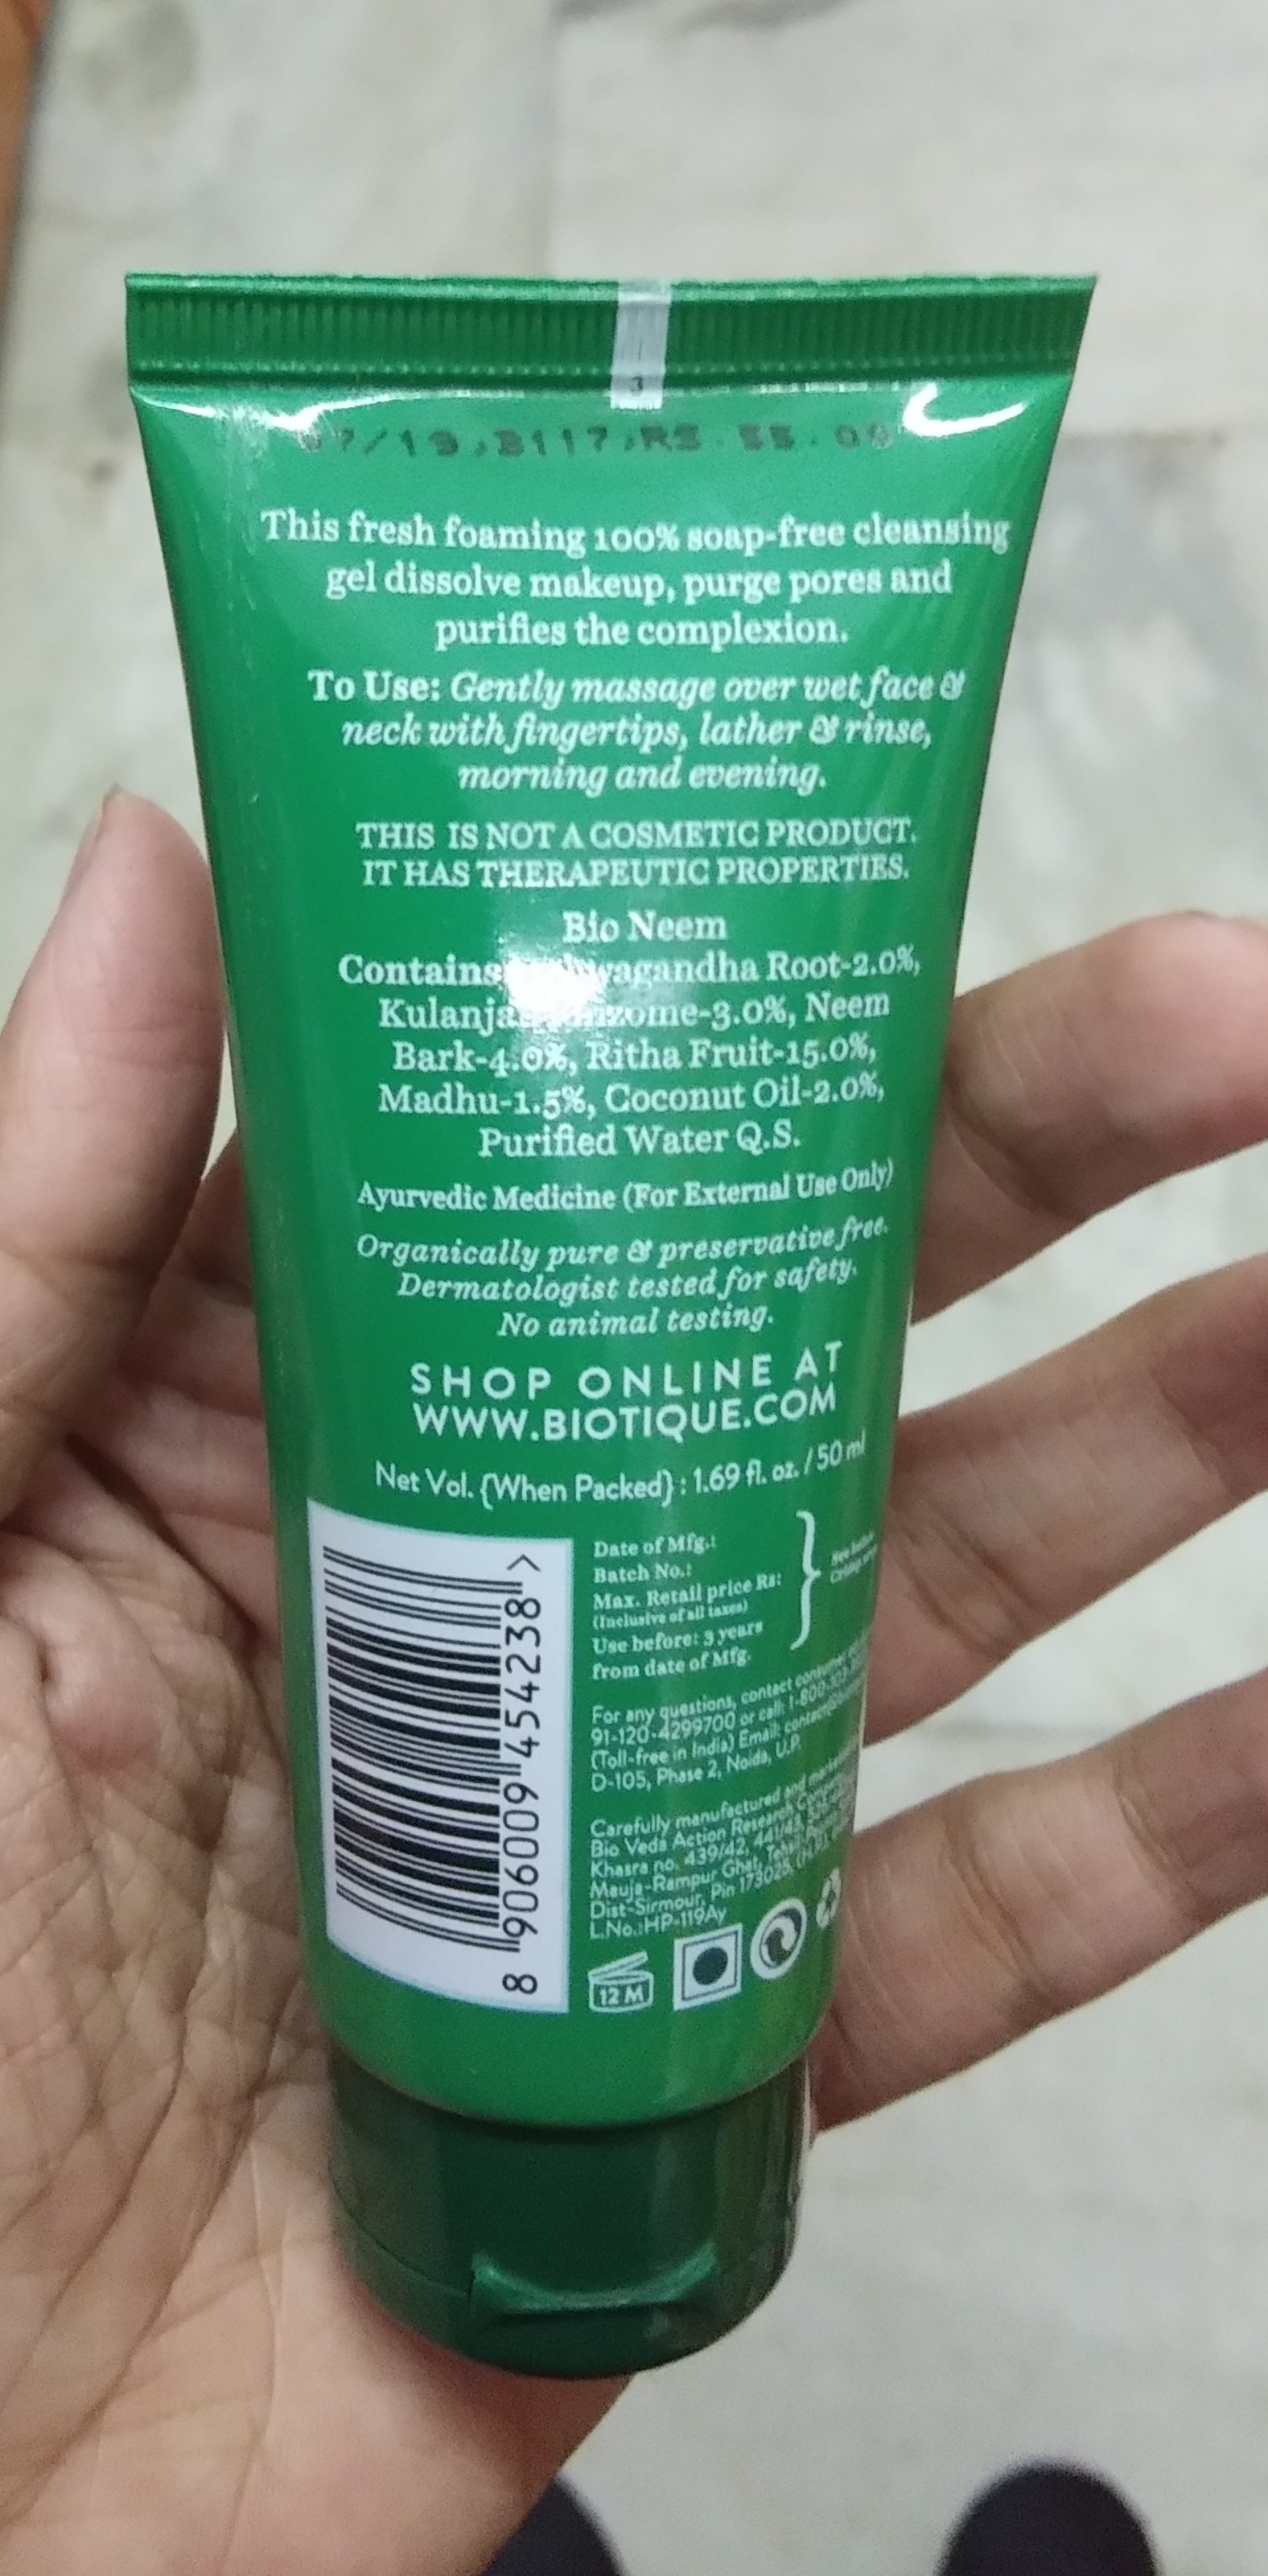 Biotique Bio Neem Purifying Face Wash pic 1-A regular face wash that cleanses the skin and nothing more-By Nasreen